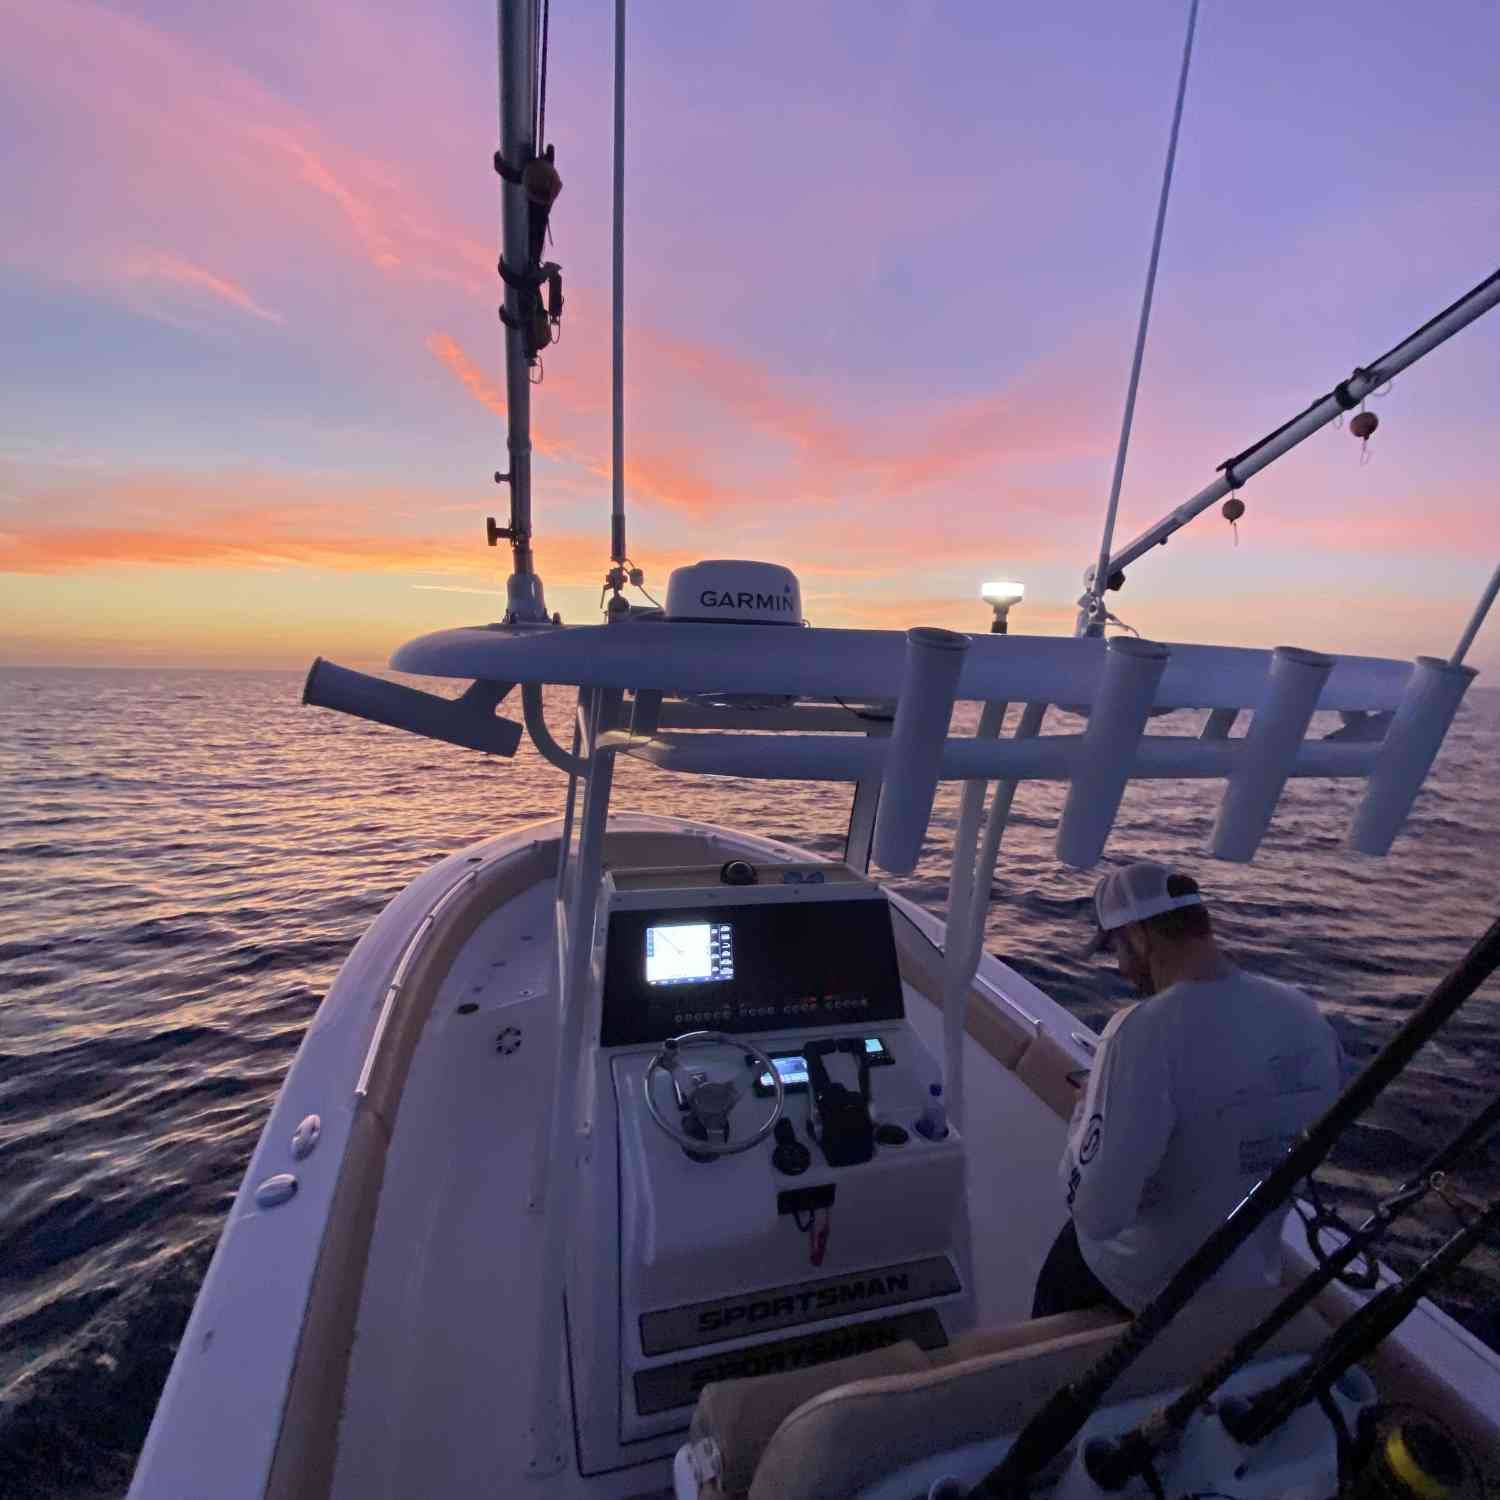 Title: Tournament Sunrise - On board their Sportsman Open 252 Center Console - Location: St.Petersburg, Fl. Participating in the Photo Contest #SportsmanApril2020